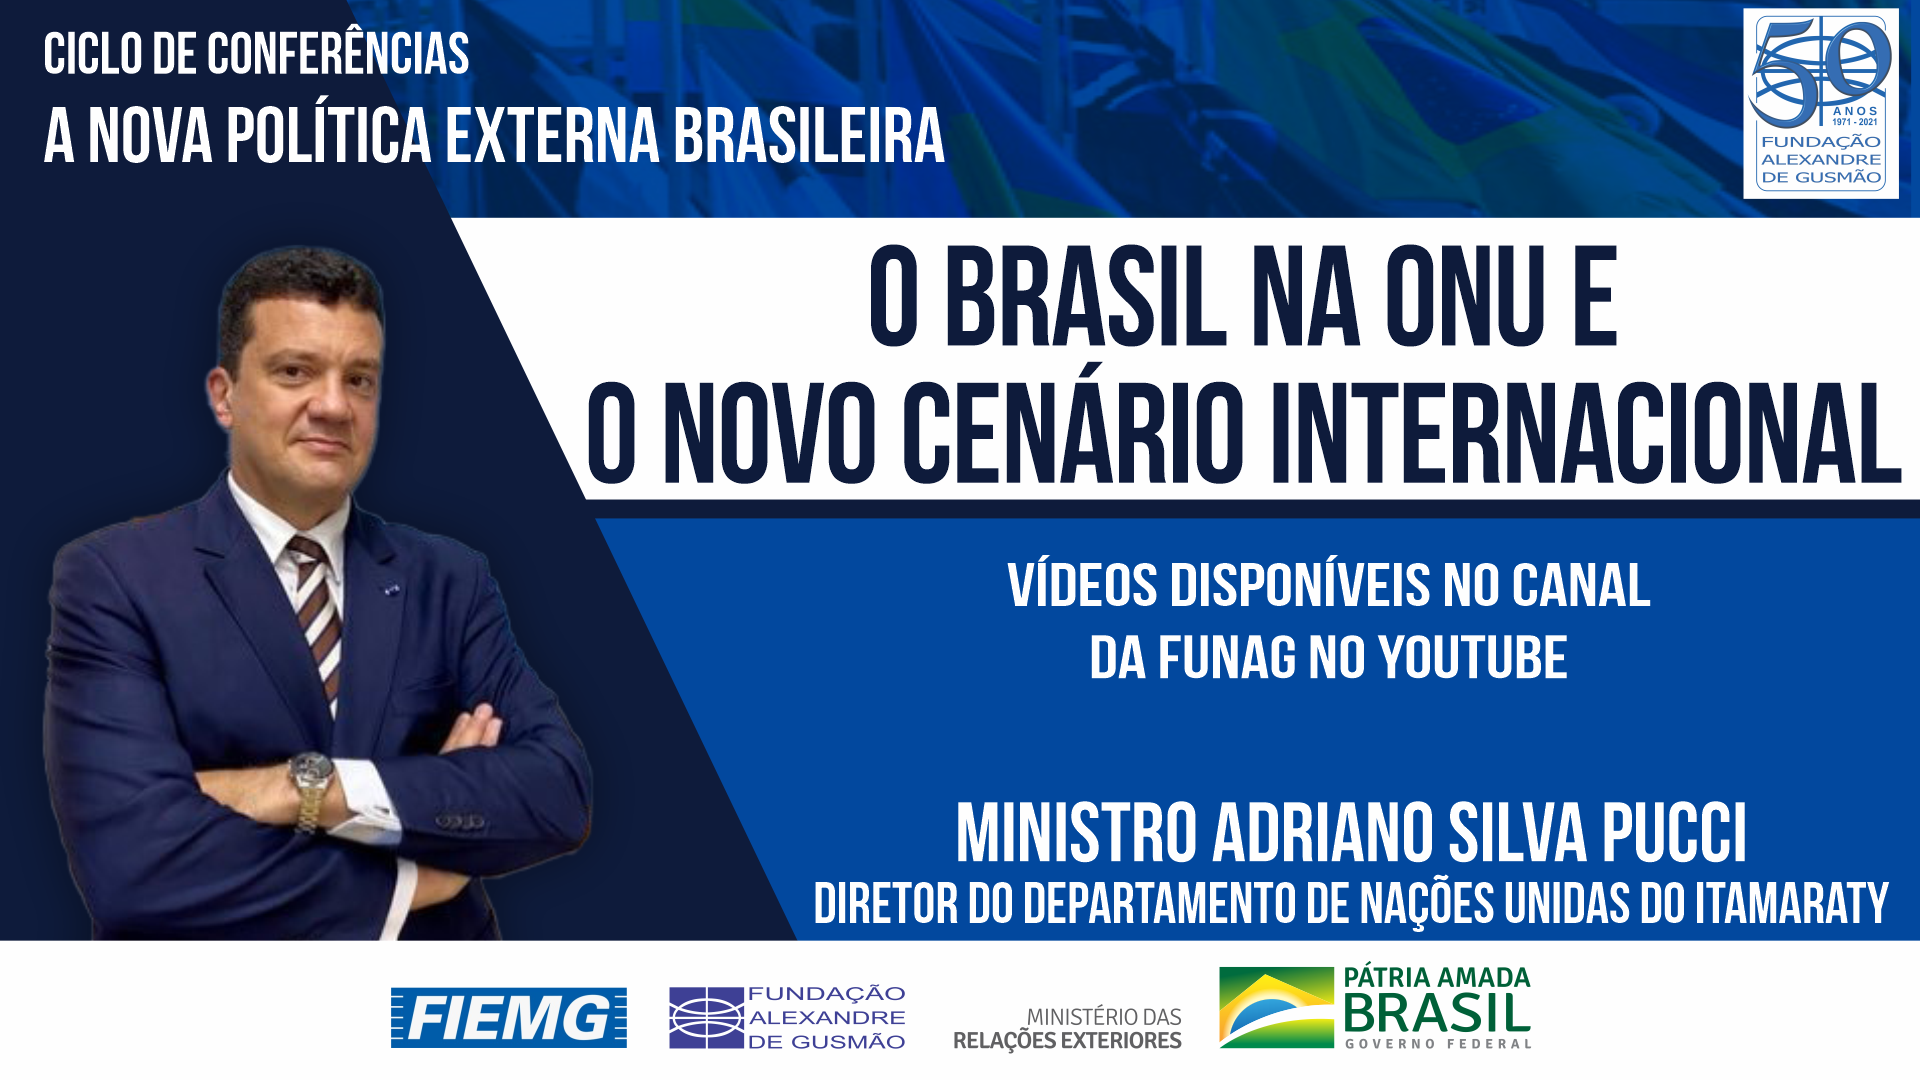 Watch the videos of the conference by the Director of the United Nations Department of the Ministry of Foreign Affairs, Minister Adriano Silva Pucci